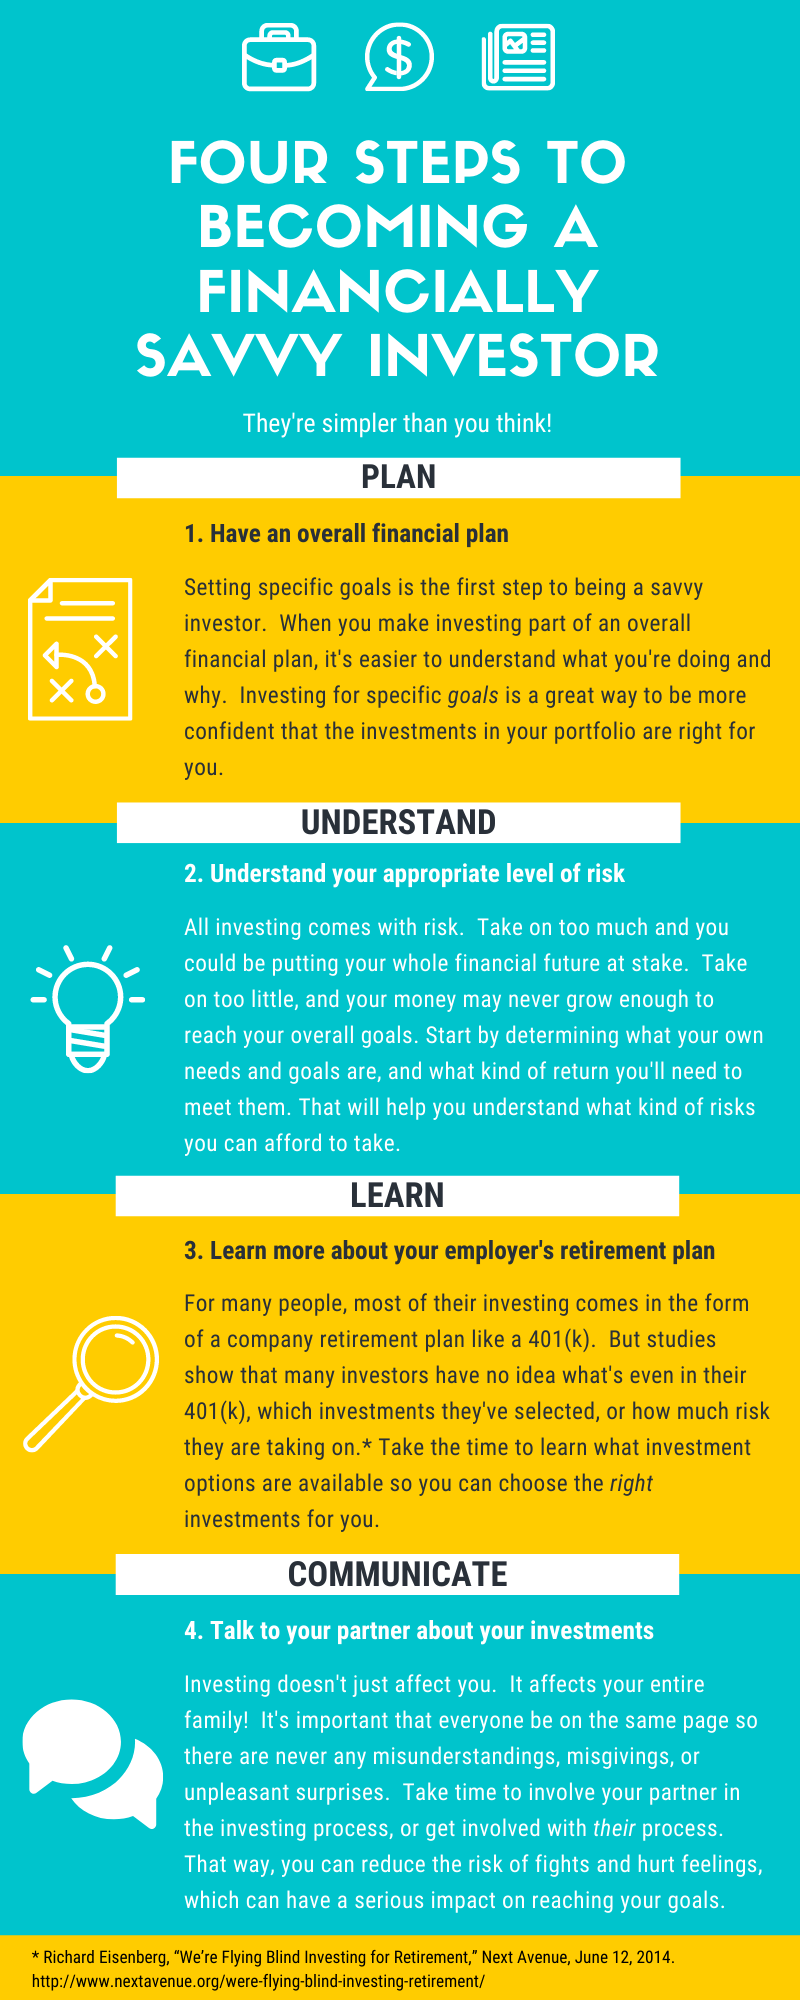 Financially-Savvy-Investor-Infographic-PNG-1-2